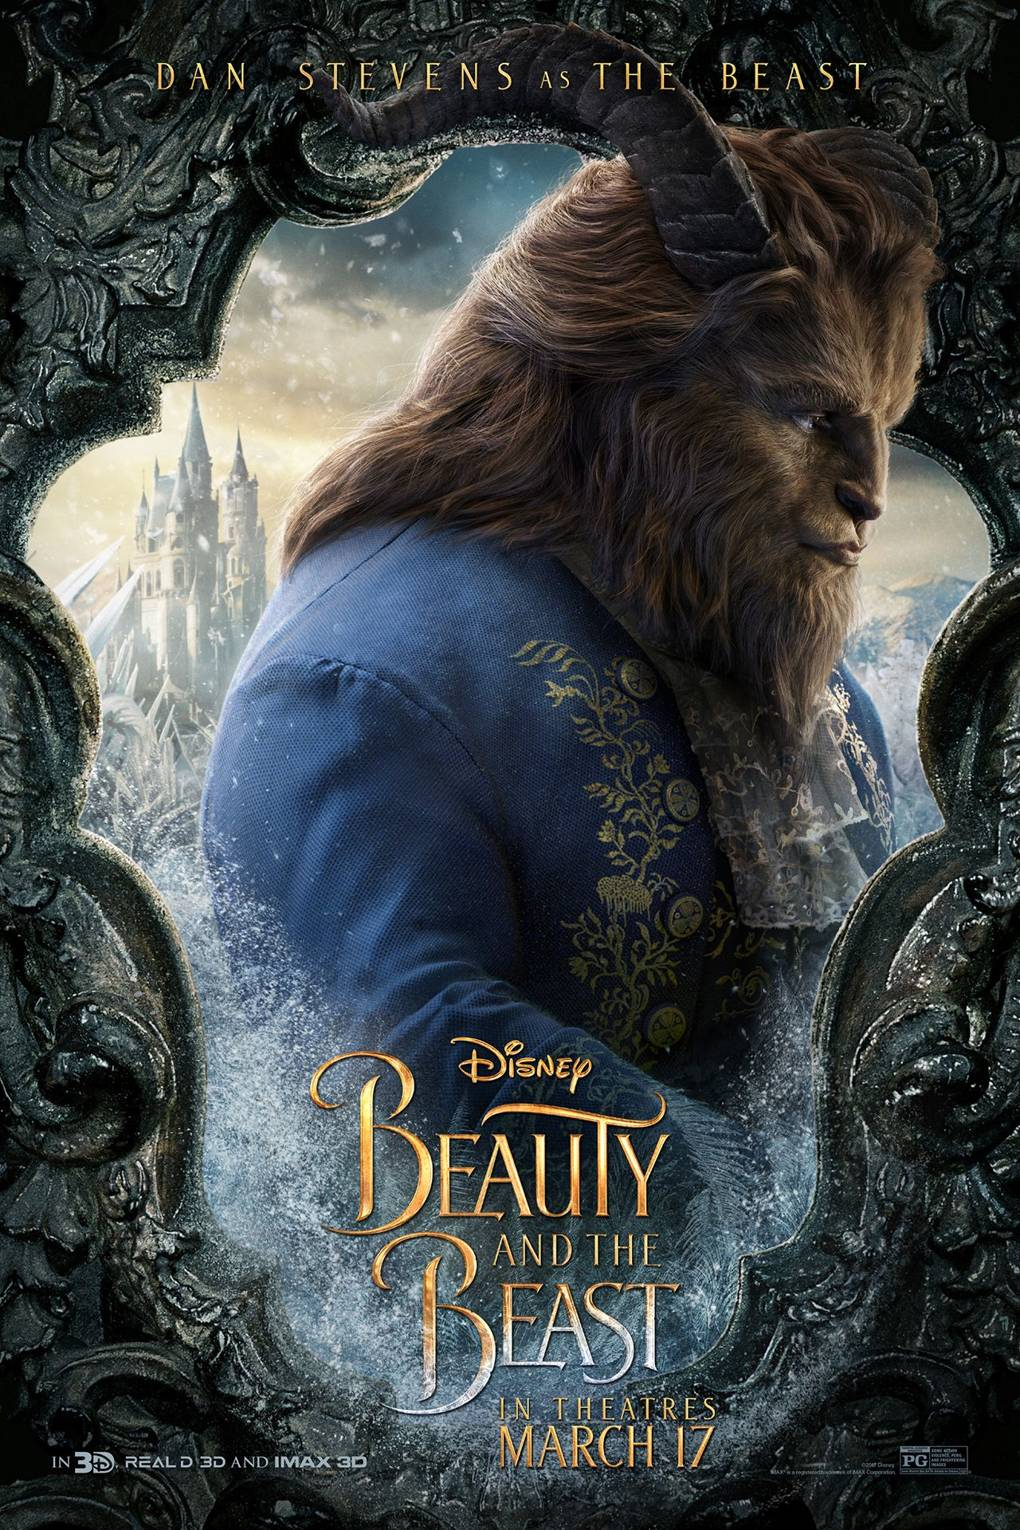 Beauty The Beast Cast List 2017 Emma Watson Dan Stevens